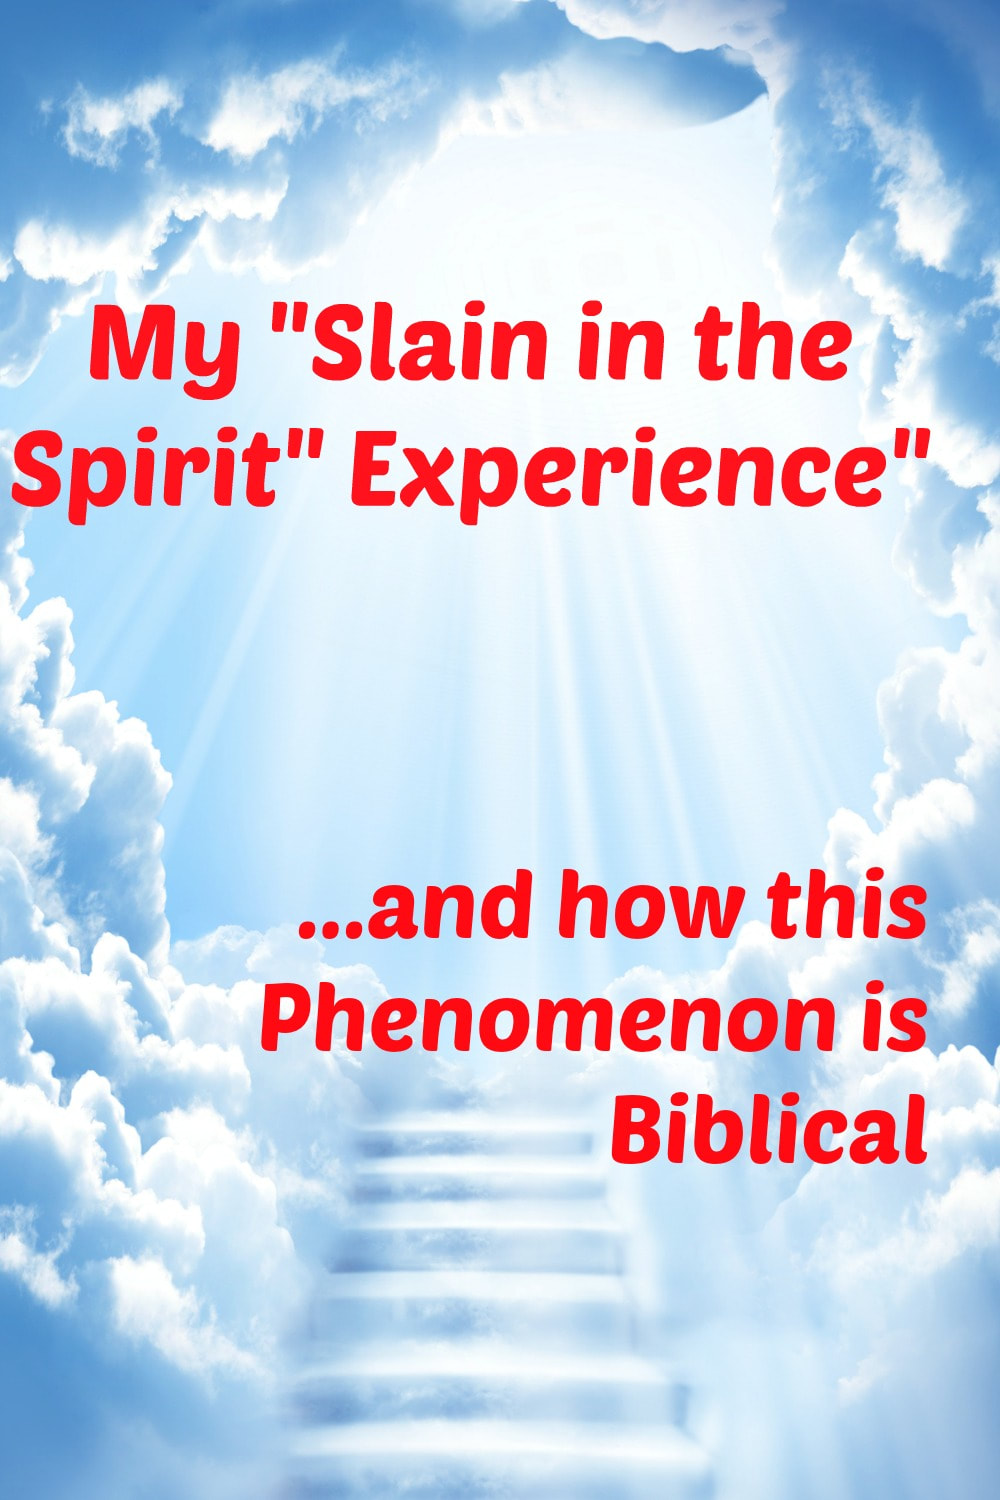 Pinterest Pinnable Image. Repin this to share with your friends and family the Biblical explanation for the slain in the Spirit experience!